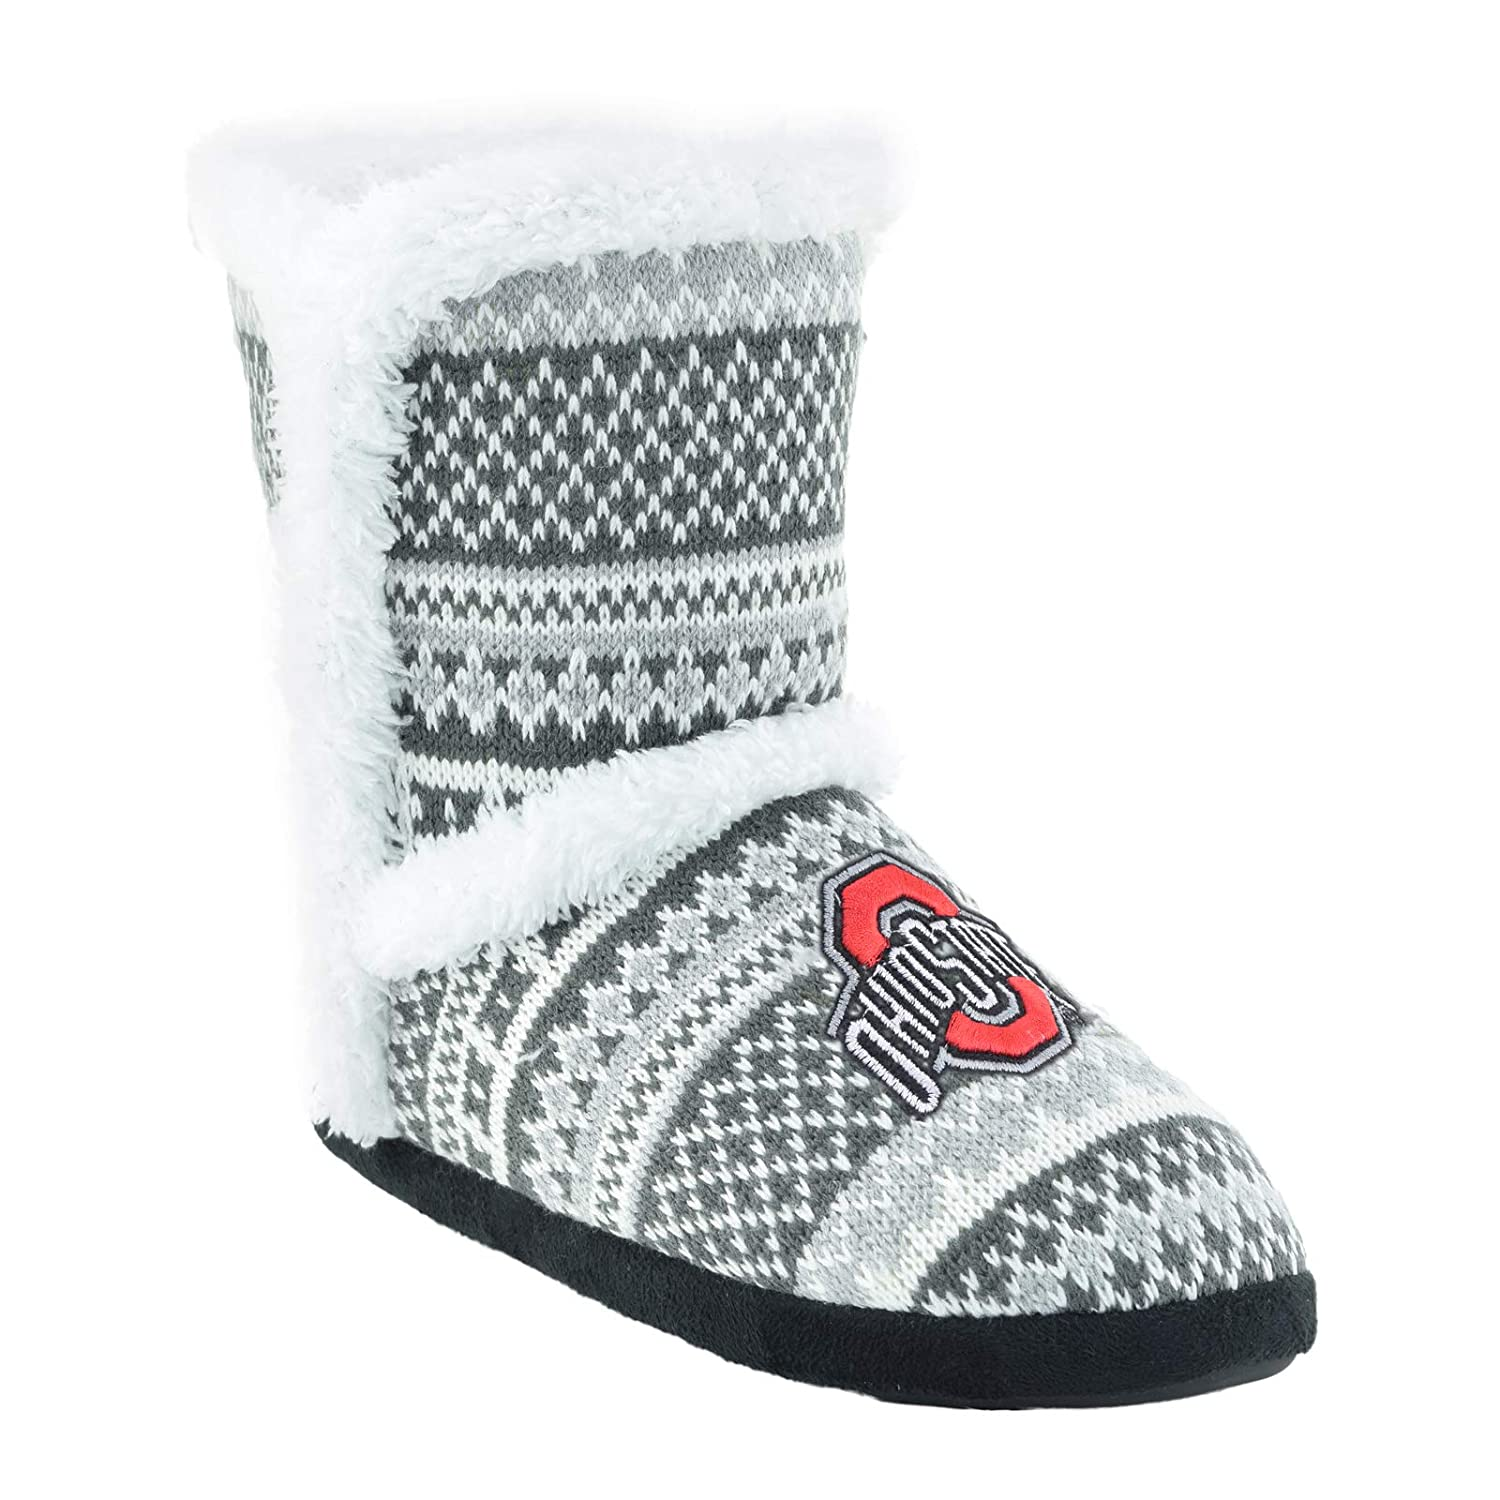 Ohio State Buckeyes Campus Footnotes High End Knit Sherpa-Lined Boots Pick Your Team -